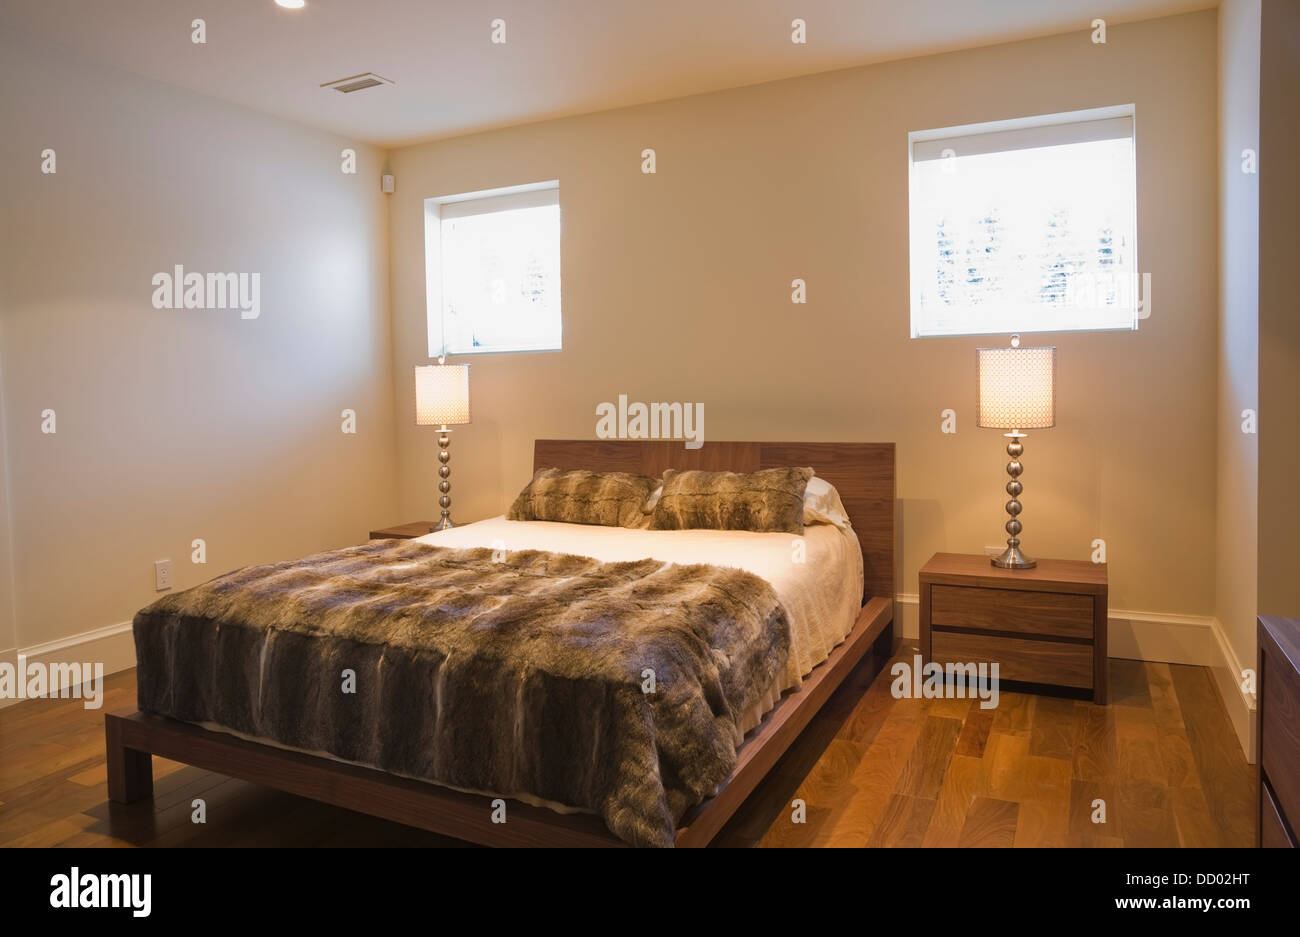 Quebec Bedroom Furniture Basement Bedroom With A Queen Size Bed And A Hardwood Floor In A